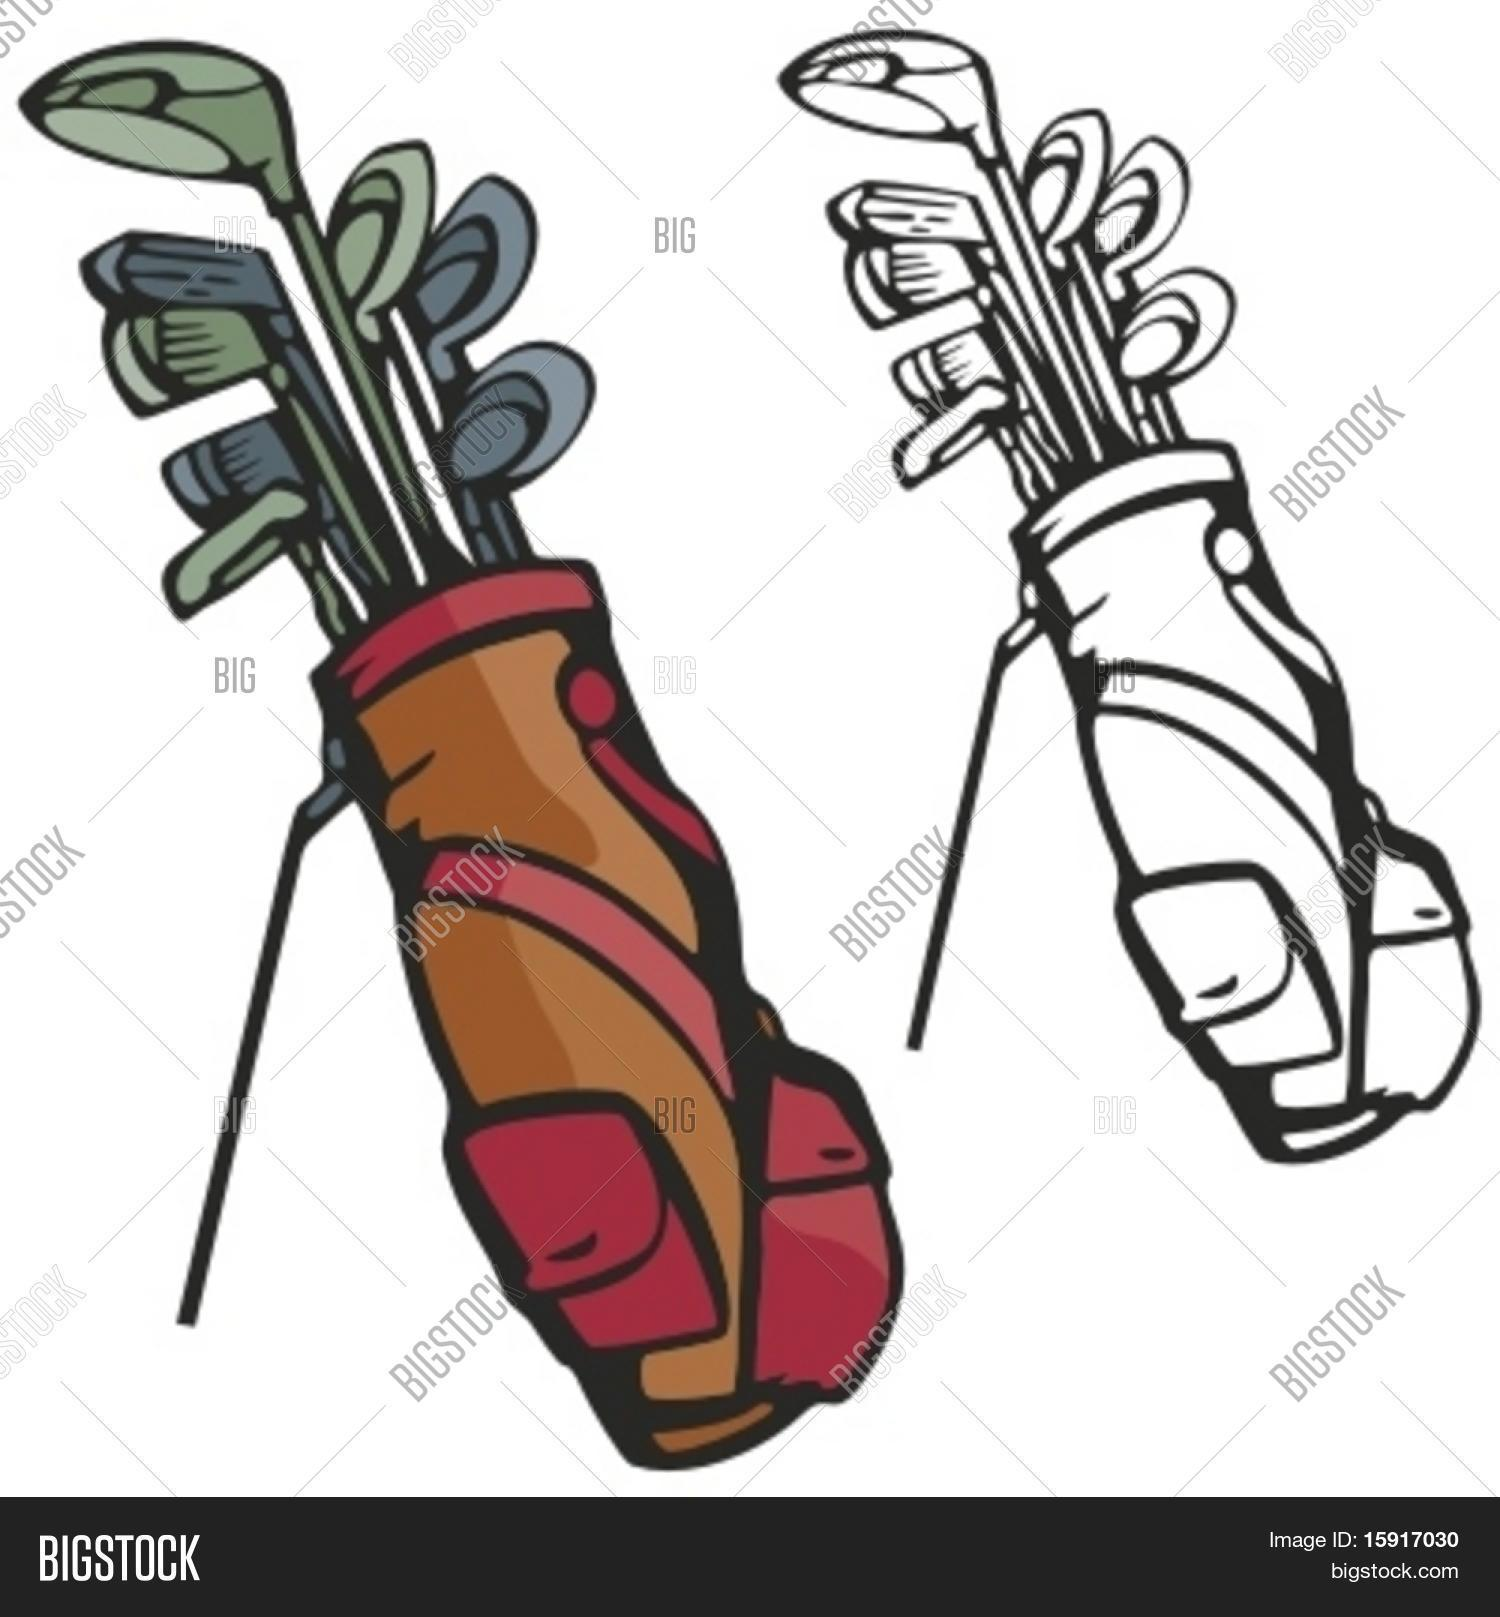 Golf Sticks Bag. Vector & Photo (Free Trial) | Bigstock on cartoon hat, cartoon men, cartoon bowling bag, cartoon camera, cartoon star, cartoon golfer, cartoon tennis bag, cartoon gloves, cartoon nut sack, cartoon wine bag, cartoon pool bag, cartoon butterfly, cartoon putter, cartoon school bag, cartoon beach bag, cartoon clubs, cartoon mother, cartoon traveling bag, cartoon baseball bag, cartoon shorts,